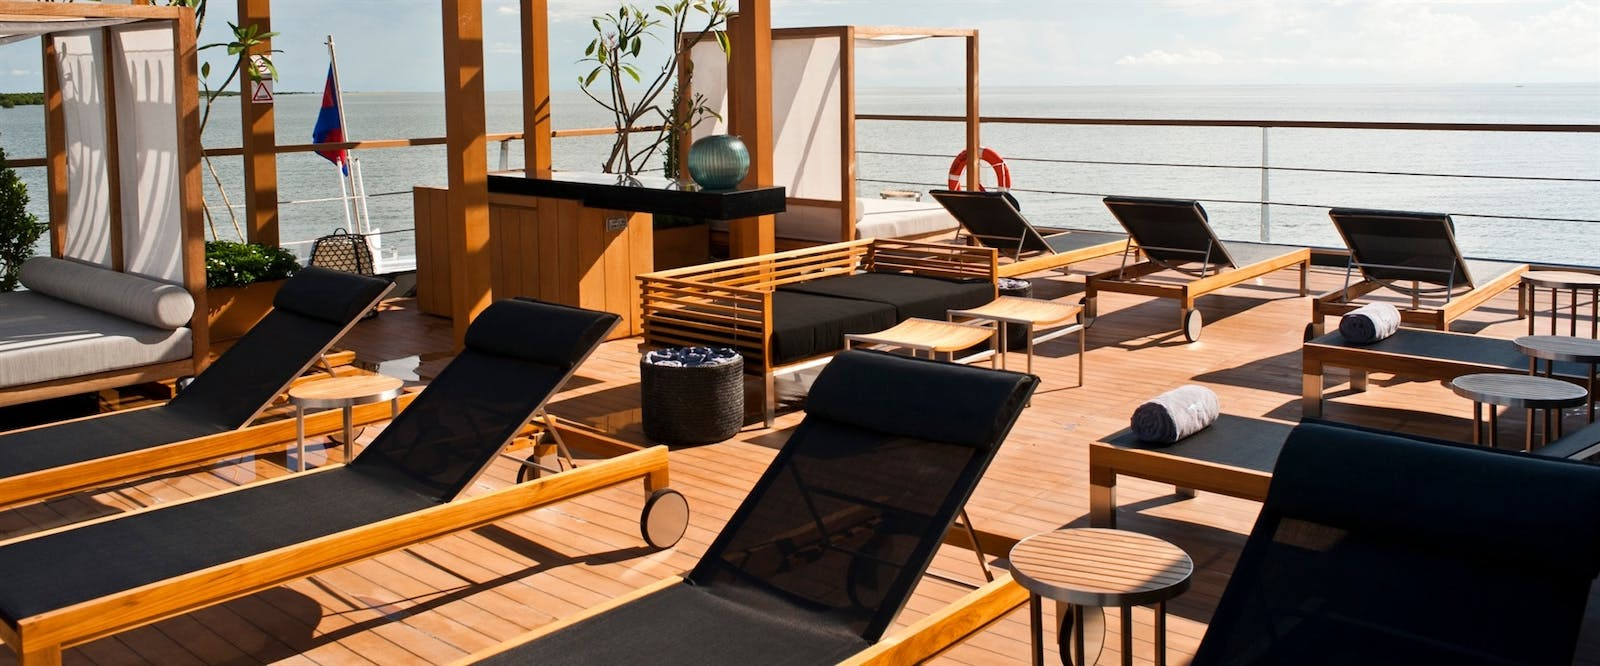 Sun Deck at Aqua Mekong, Cambodia and Vietnam